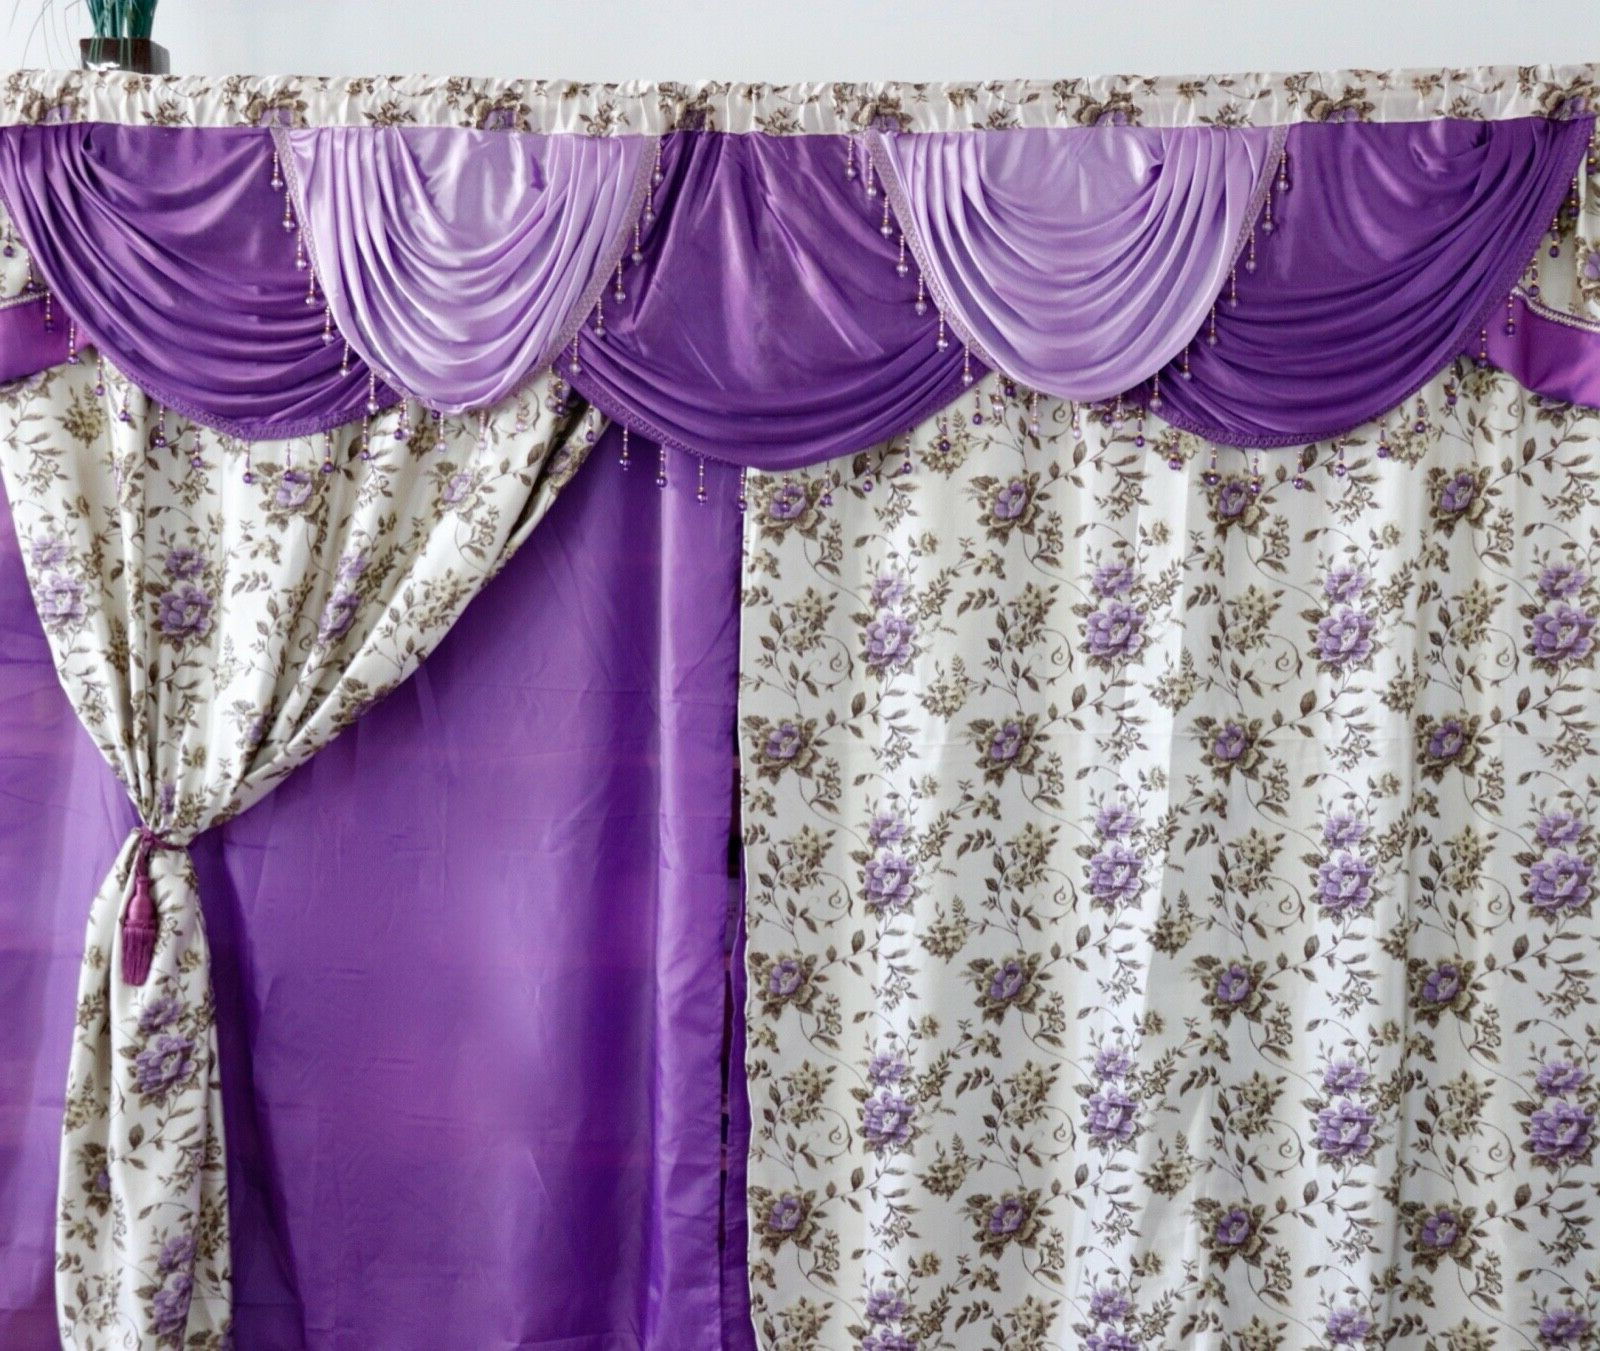 Luxury Größe Curtain Panel Window Floral Jacquard Super Pertaining To Most Current Luxury Light Filtering Straight Curtain Valances (View 17 of 20)